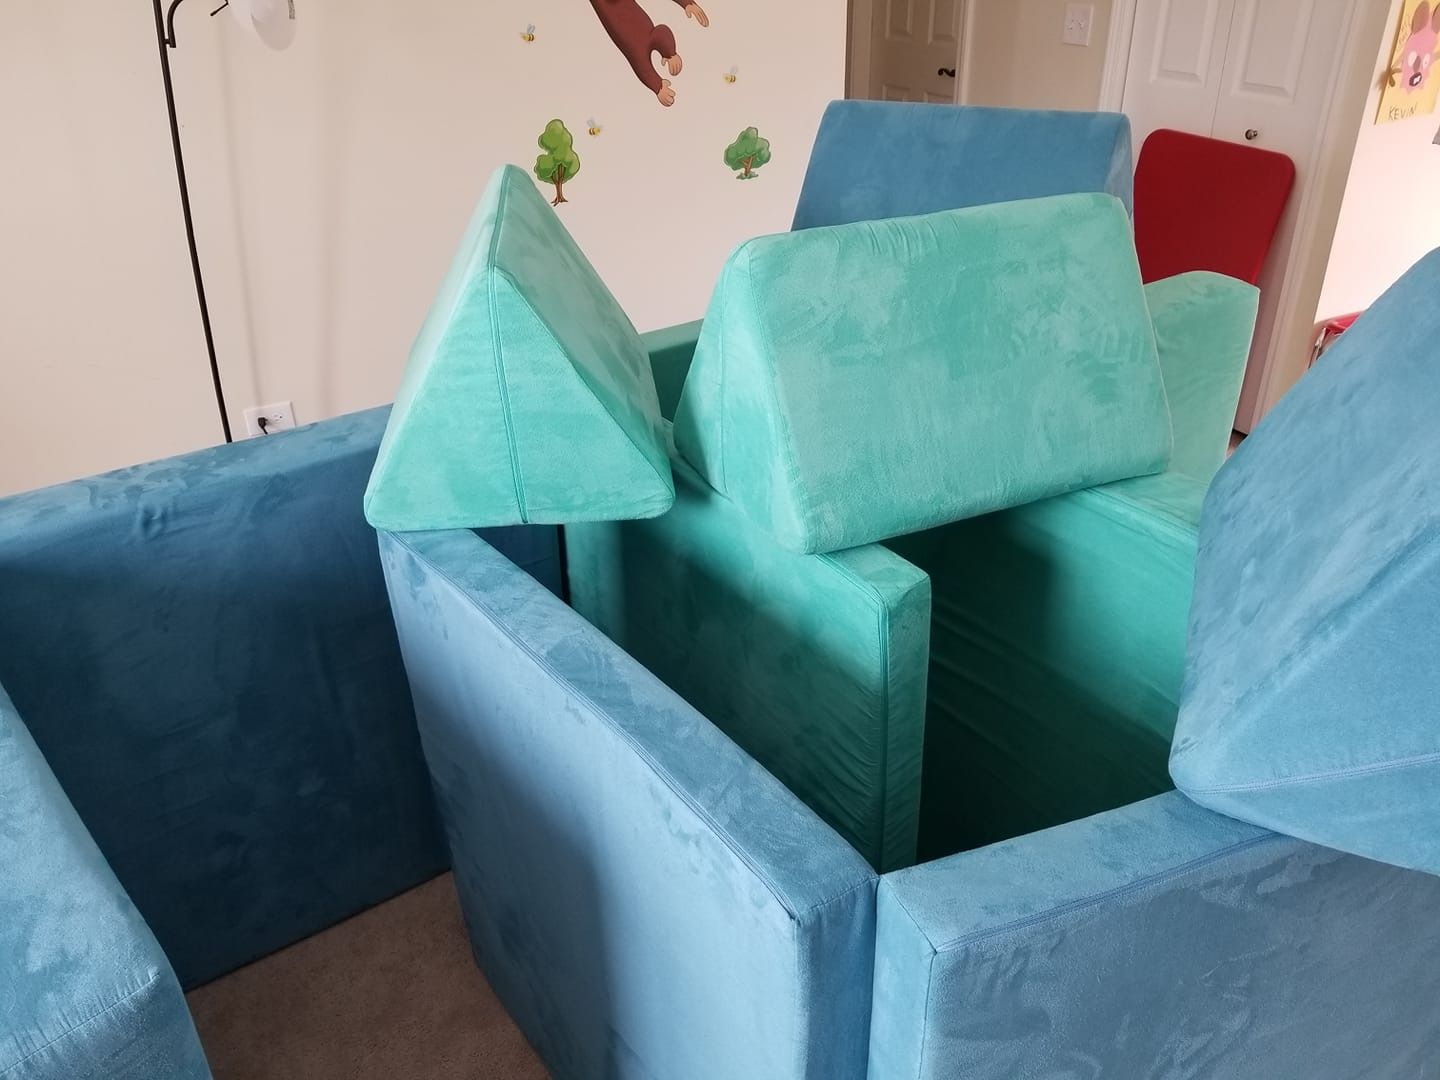 Nuggets Couch / Nugget The Easiest Couch Ever By Nugget ...